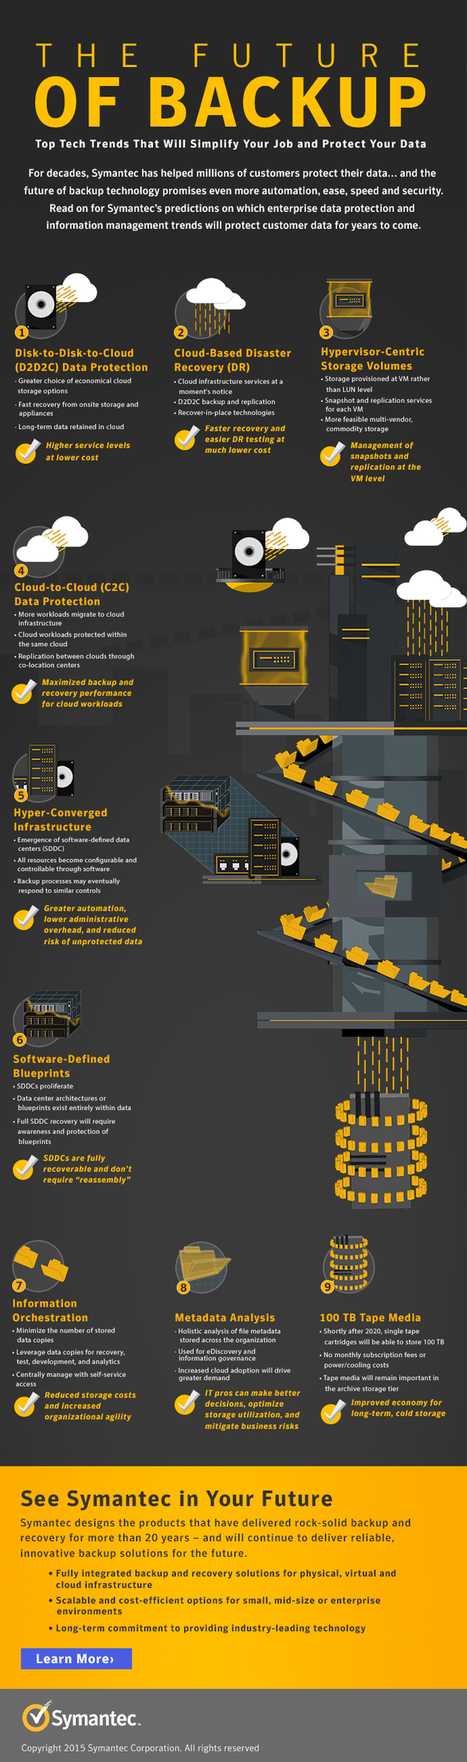 El futuro de las copias de seguridad #infografia #infographic #cloudcomputing | Pedalogica: educación y TIC | Scoop.it